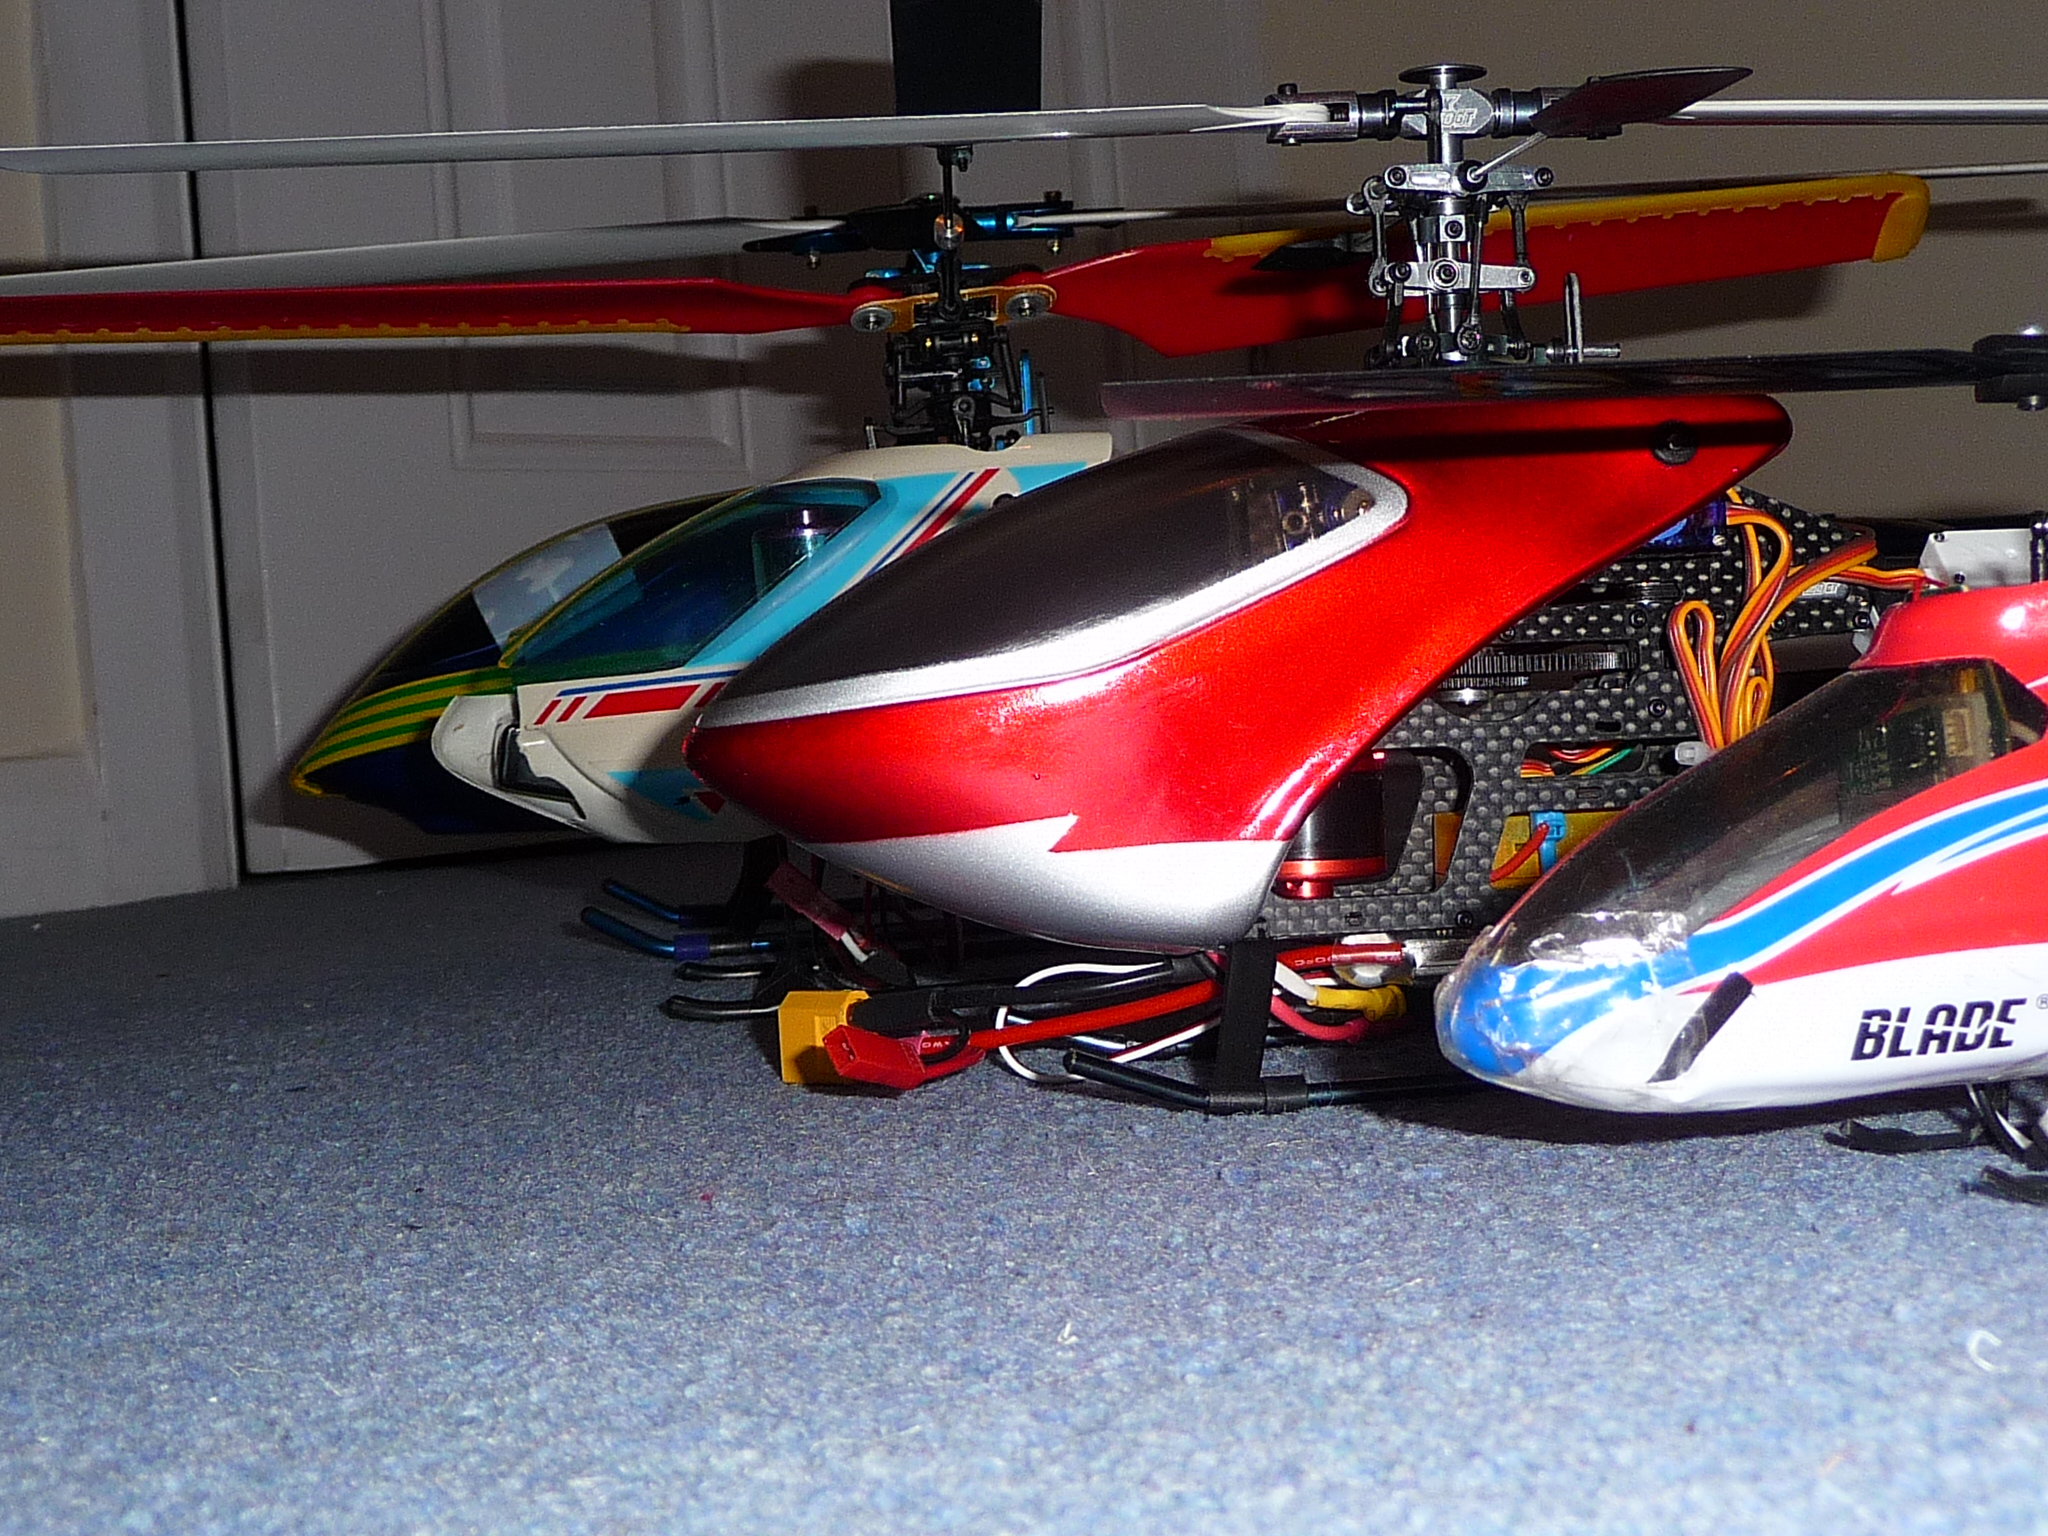 The Heli-Hack heli fleet: Align Trex 450 copy, HoneyBee Fixed Pitch V1, HK250GT, Blade mCPX